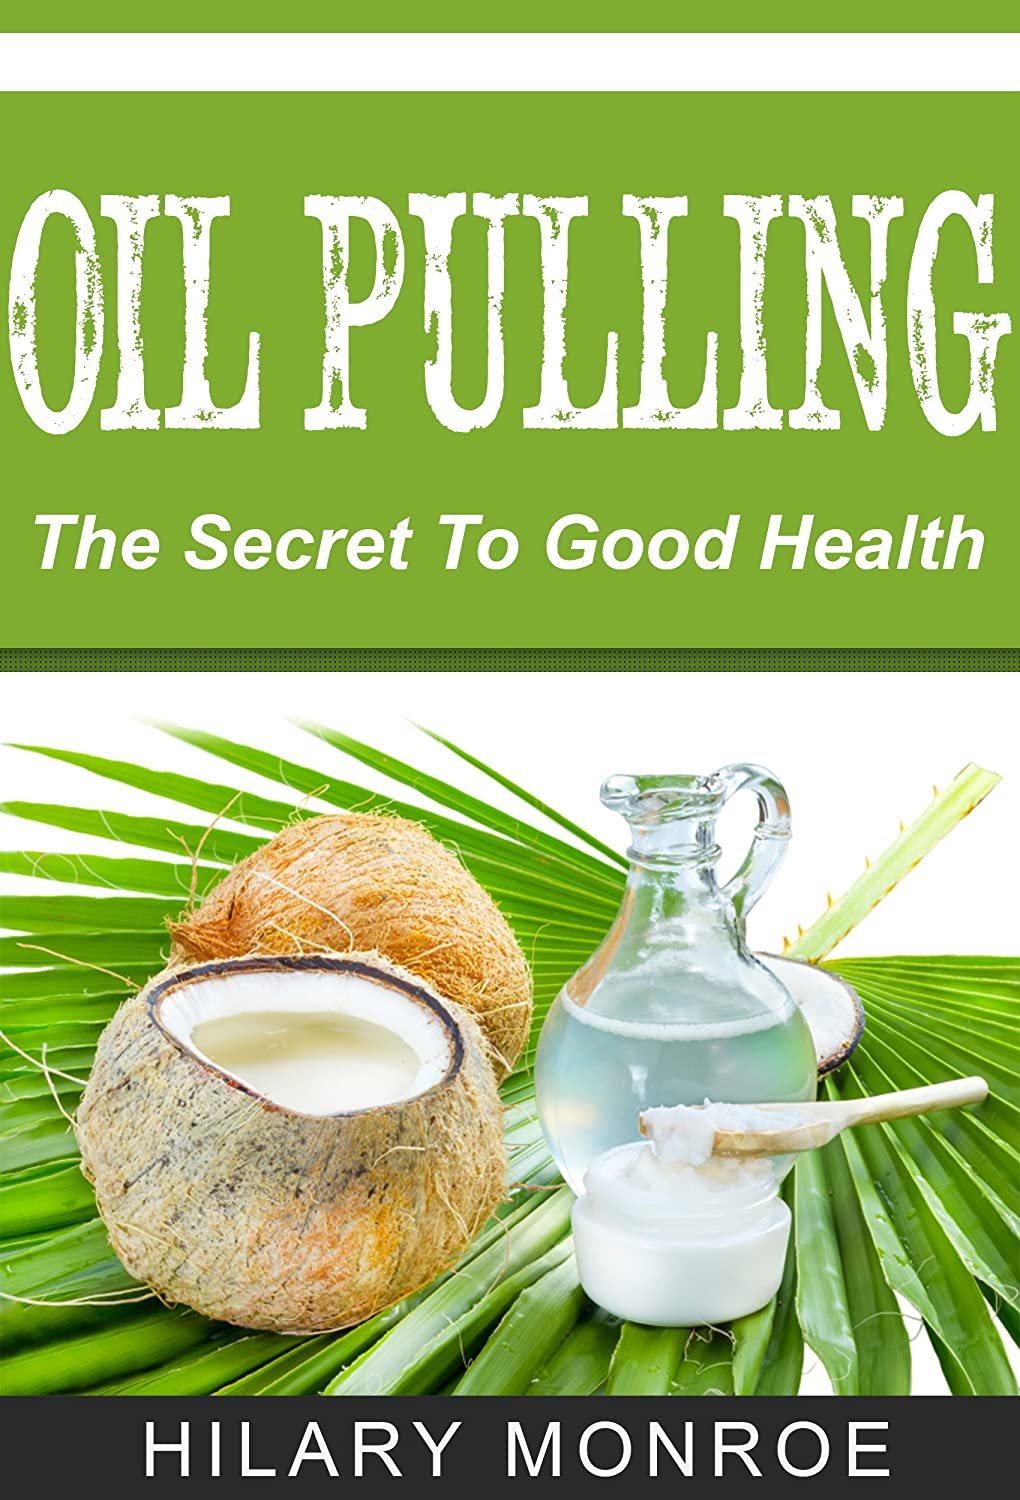 http://www.amazon.com/Oil-Pulling-Secret-Good-Health-ebook/dp/B00LU5IQIM/ref=as_sl_pc_ss_til?tag=lettfromahome-20&linkCode=w01&linkId=27CKNJXERQIOQYGN&creativeASIN=B00LU5IQIM